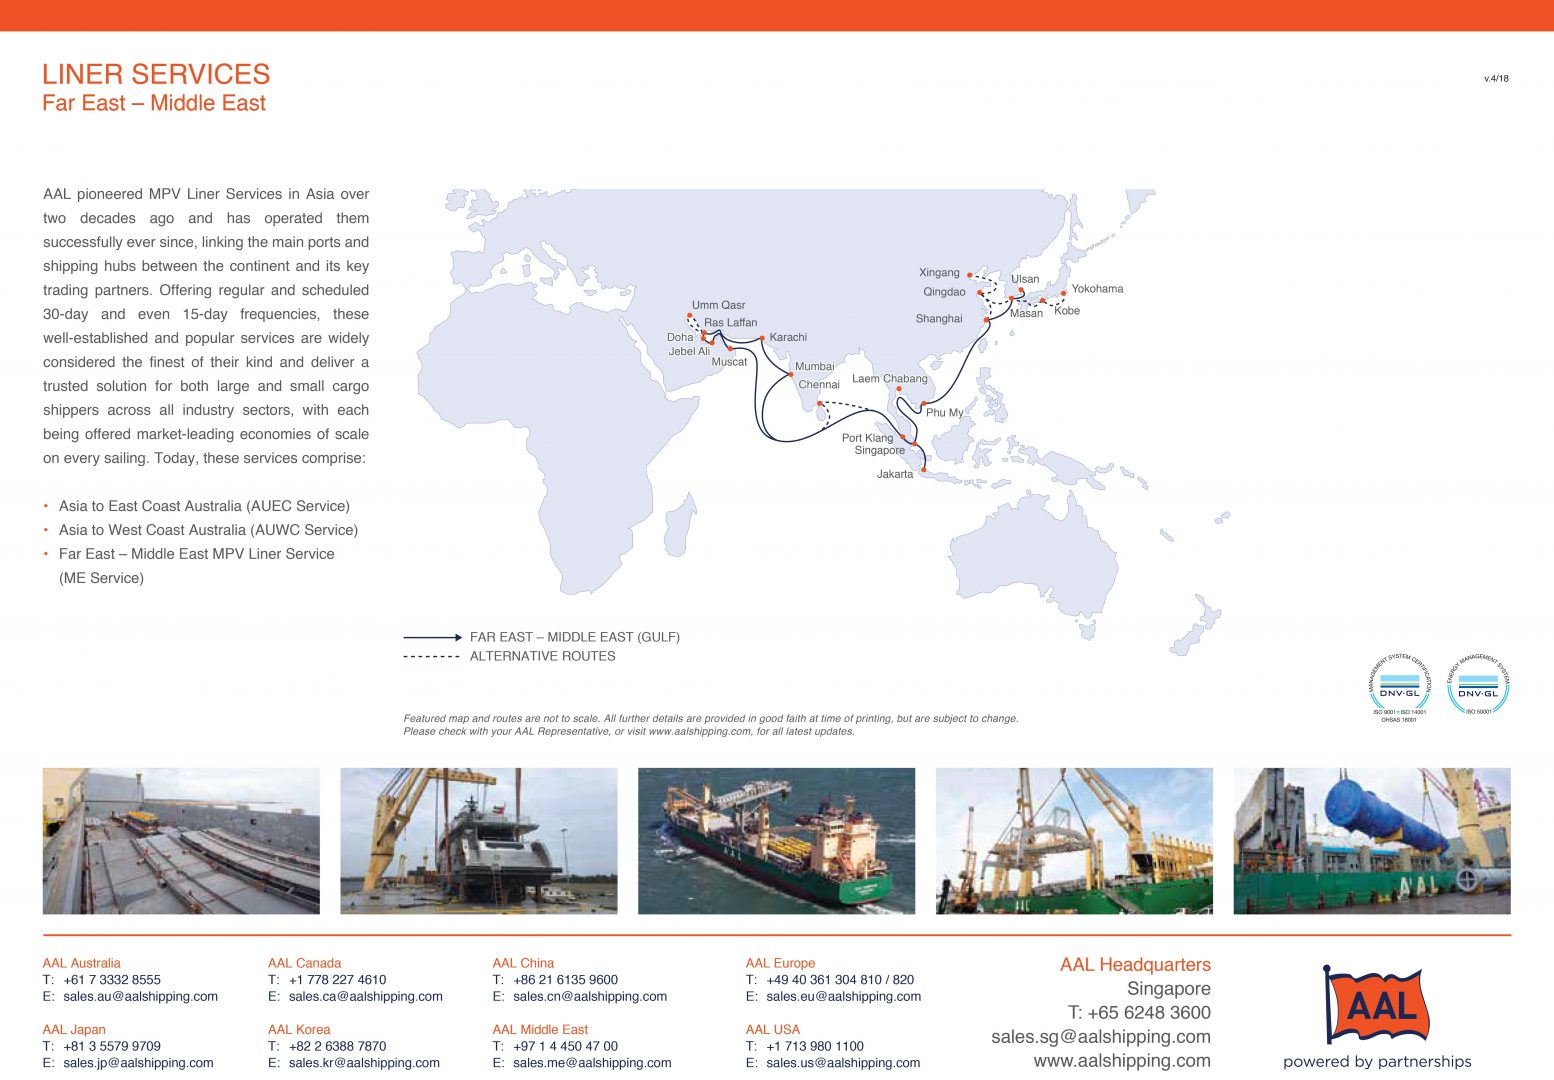 FAR EAST – MIDDLE EAST LINER SERVICE ROUTE MAP